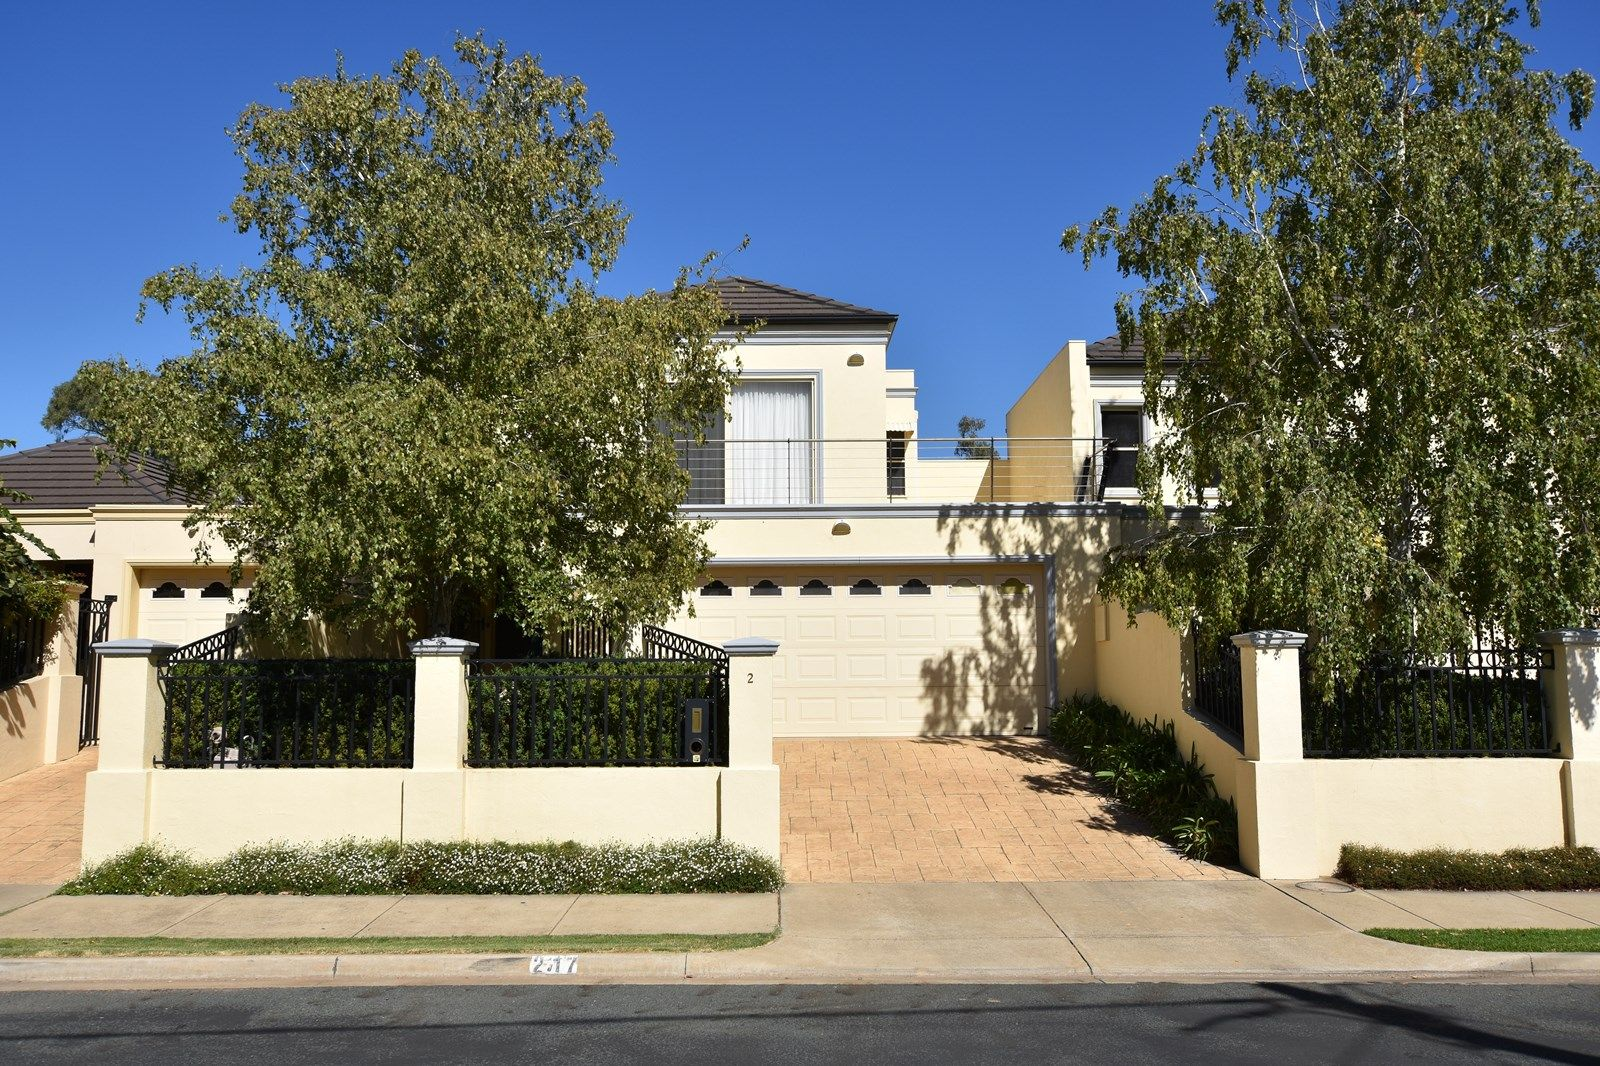 2/17 Murray Street, Echuca VIC 3564, Image 1